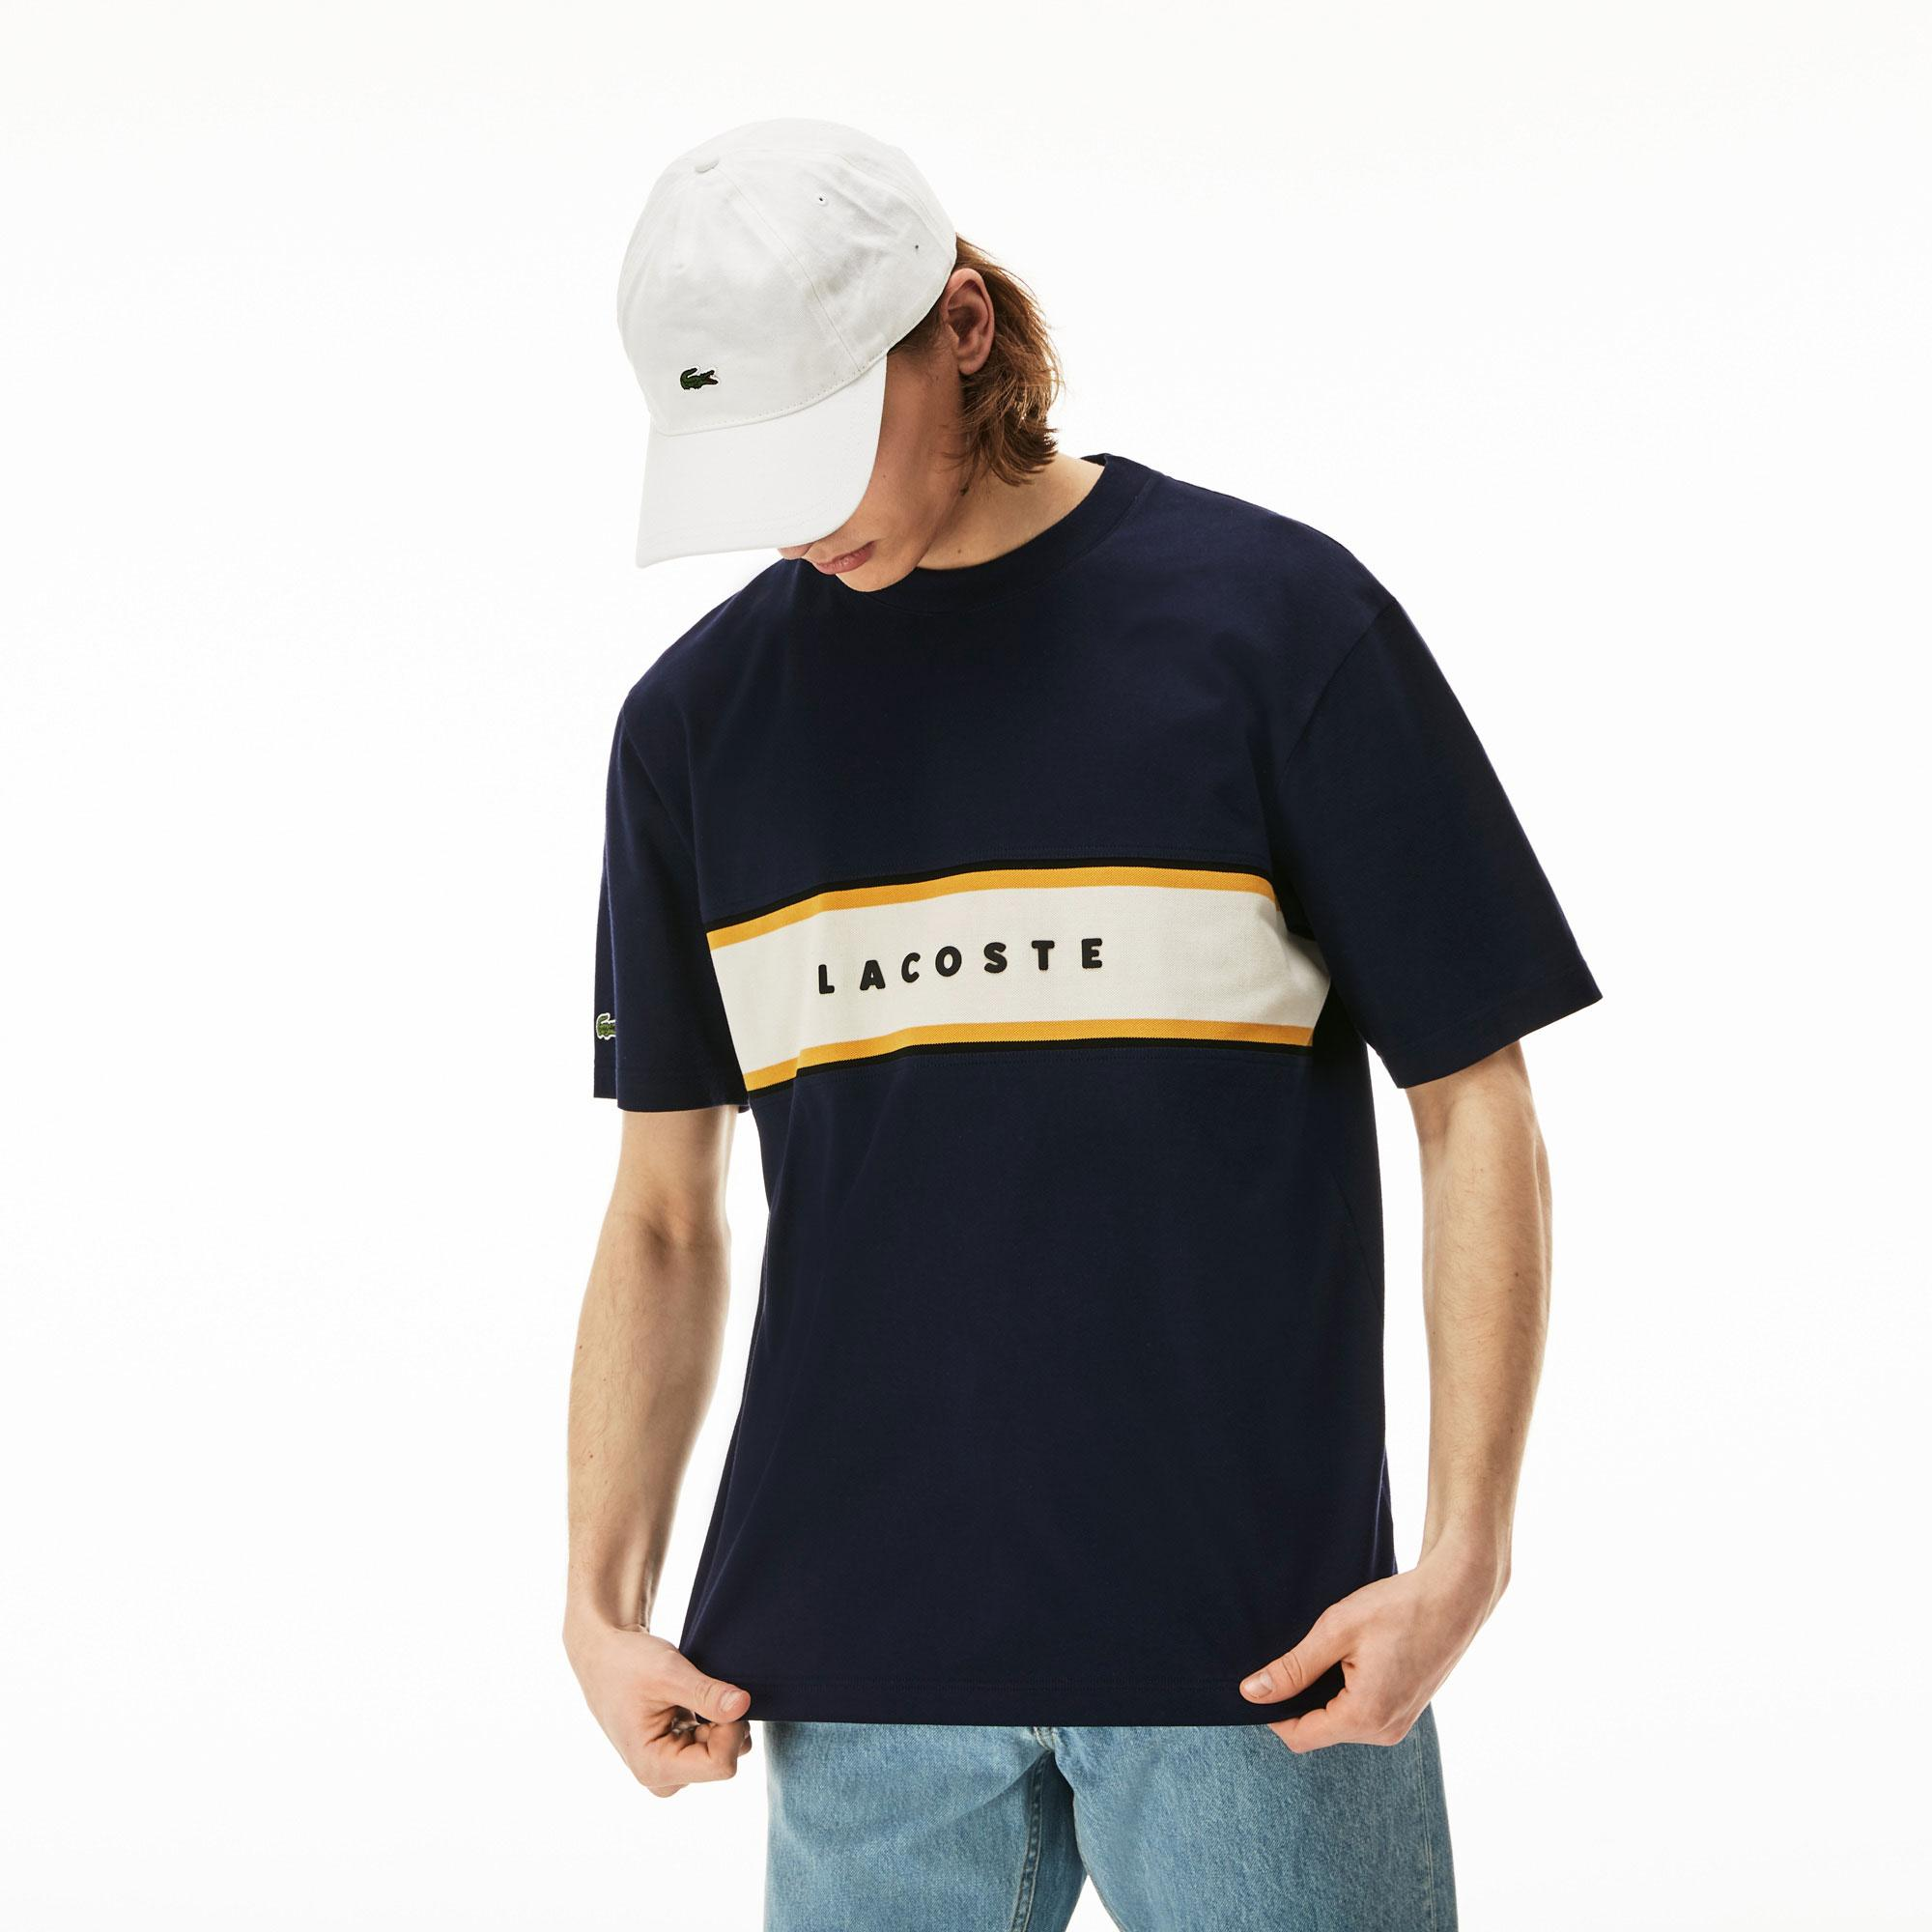 Lacoste Men's Crew Neck T-Shirt